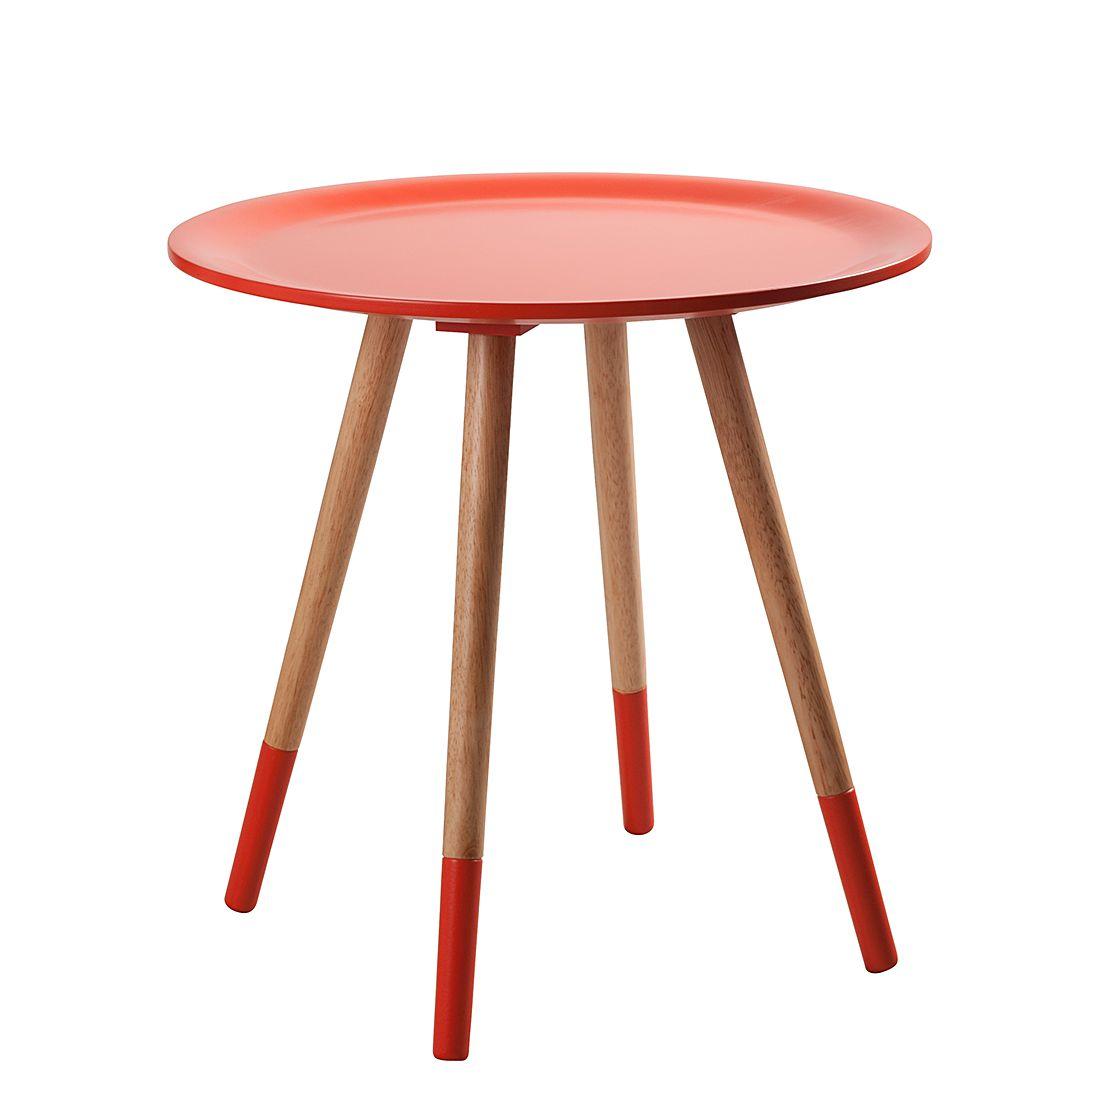 Table d'appoint Two Tone - Orange, Zuiver